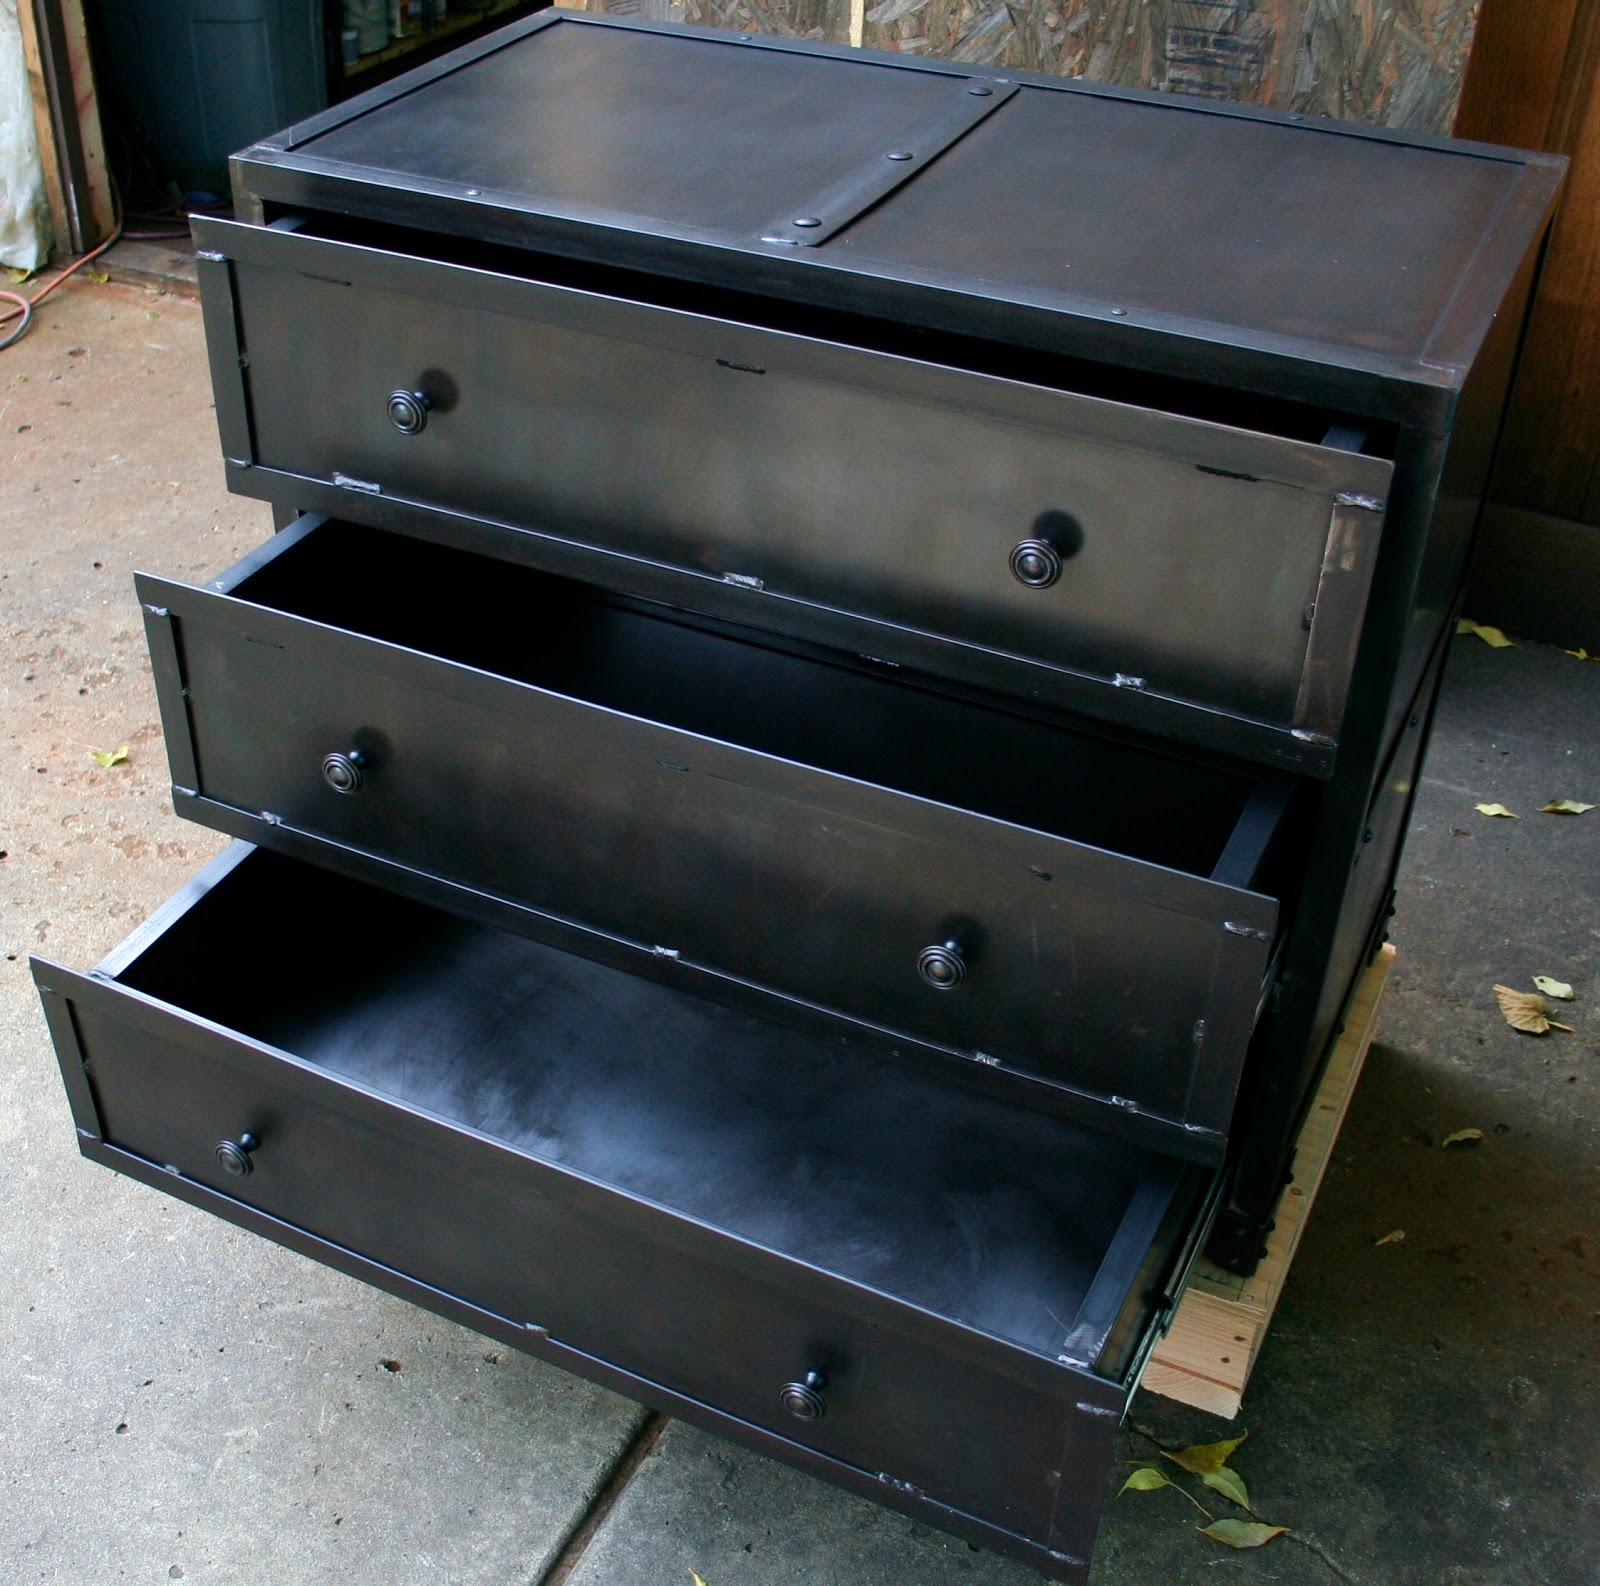 Real Industrial Edge Furniture Llc Industrial Metal Chest Of Drawers